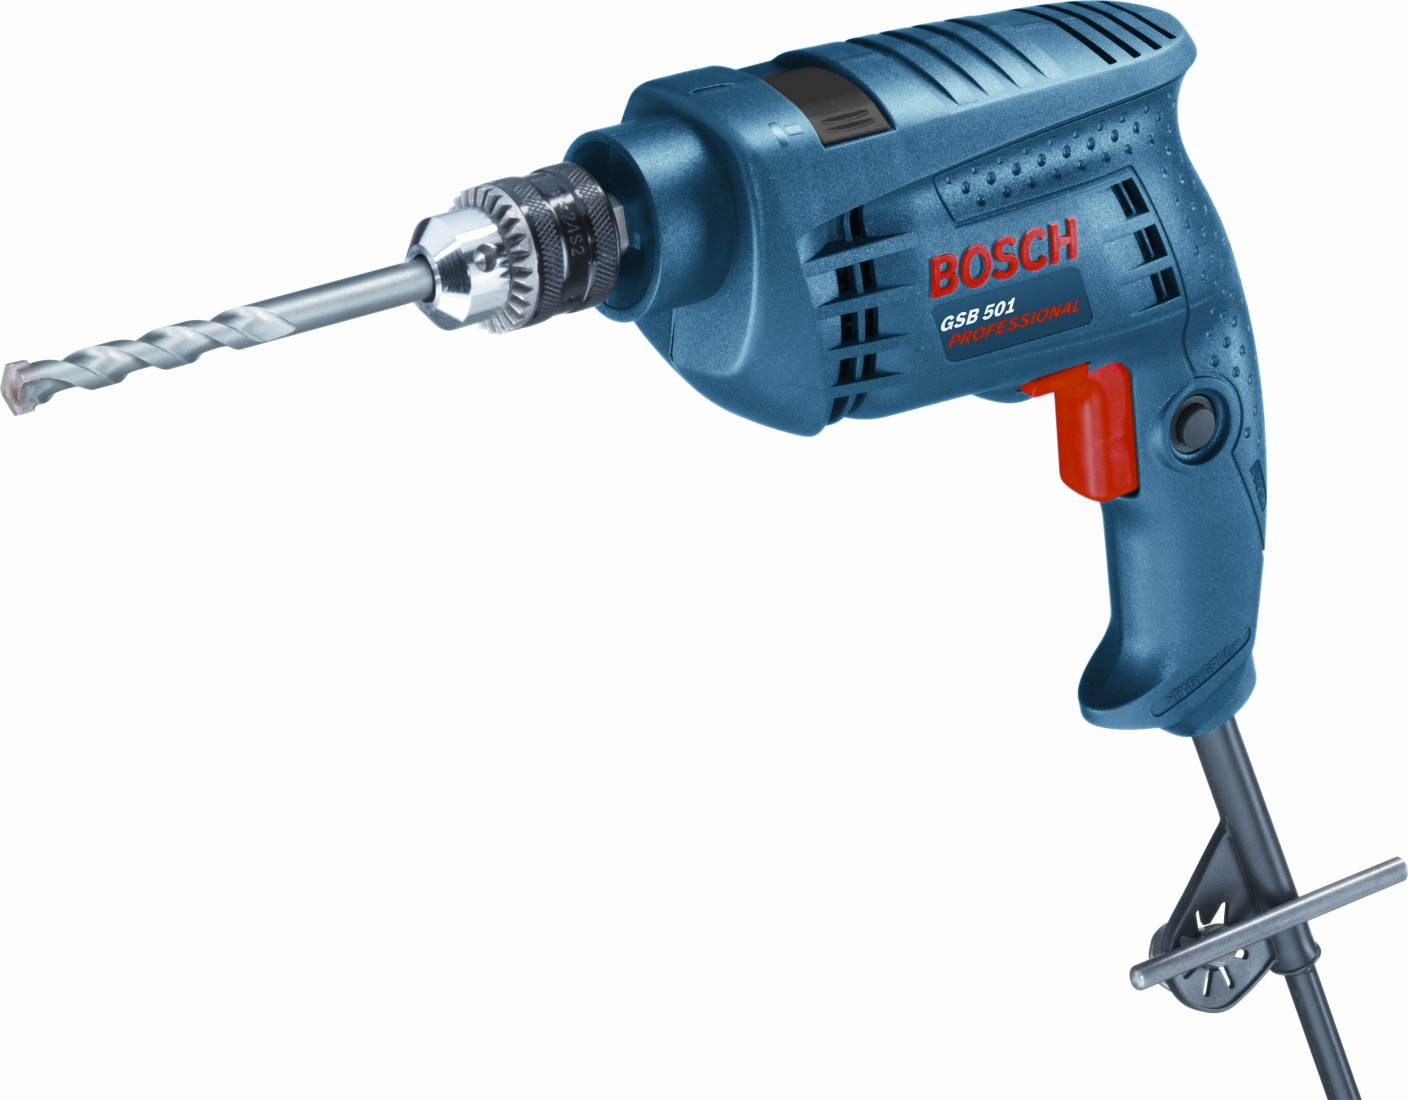 bosch gsb 501 professional 13mm 500w impact driver price in india buy bosch gsb 501. Black Bedroom Furniture Sets. Home Design Ideas